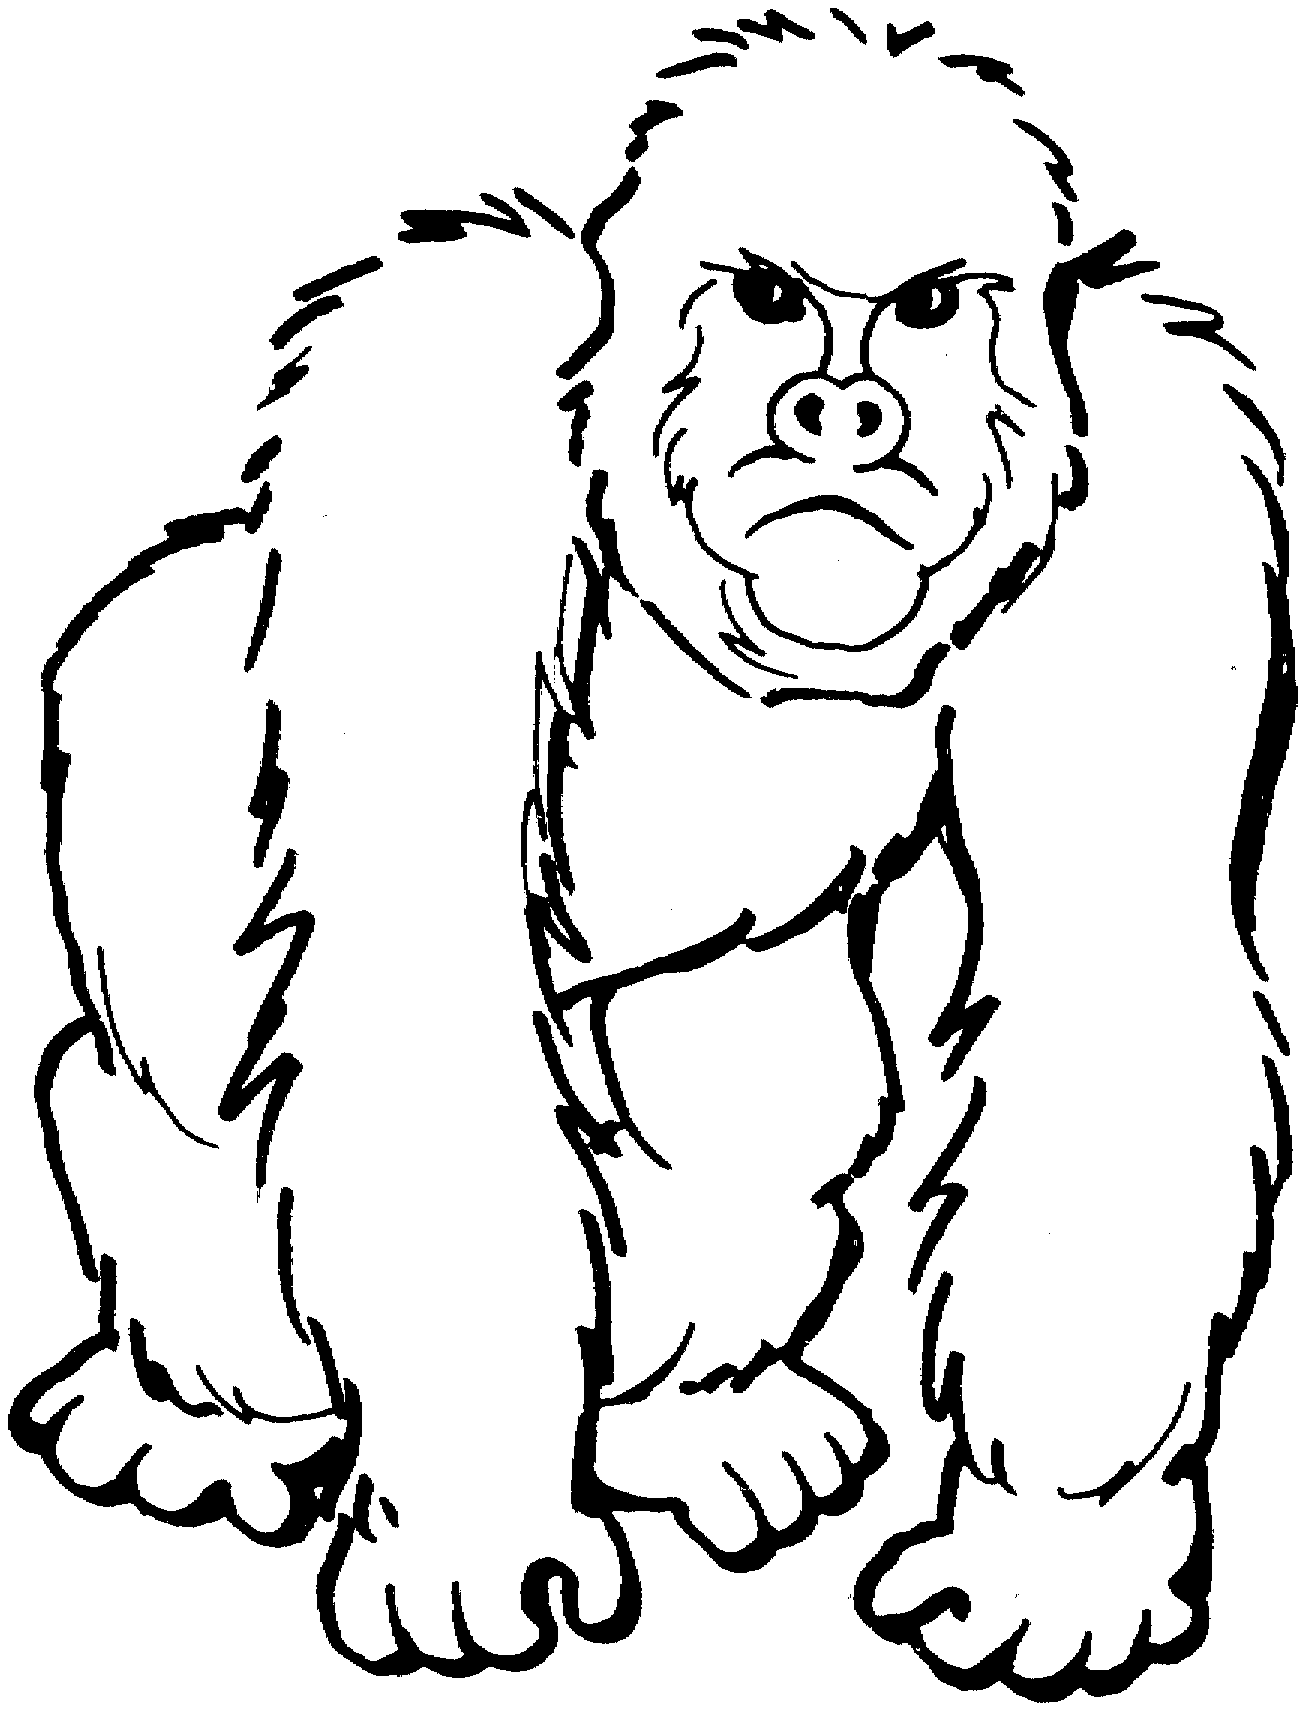 gorilla printable free online coloring pages thecolor gorilla printable